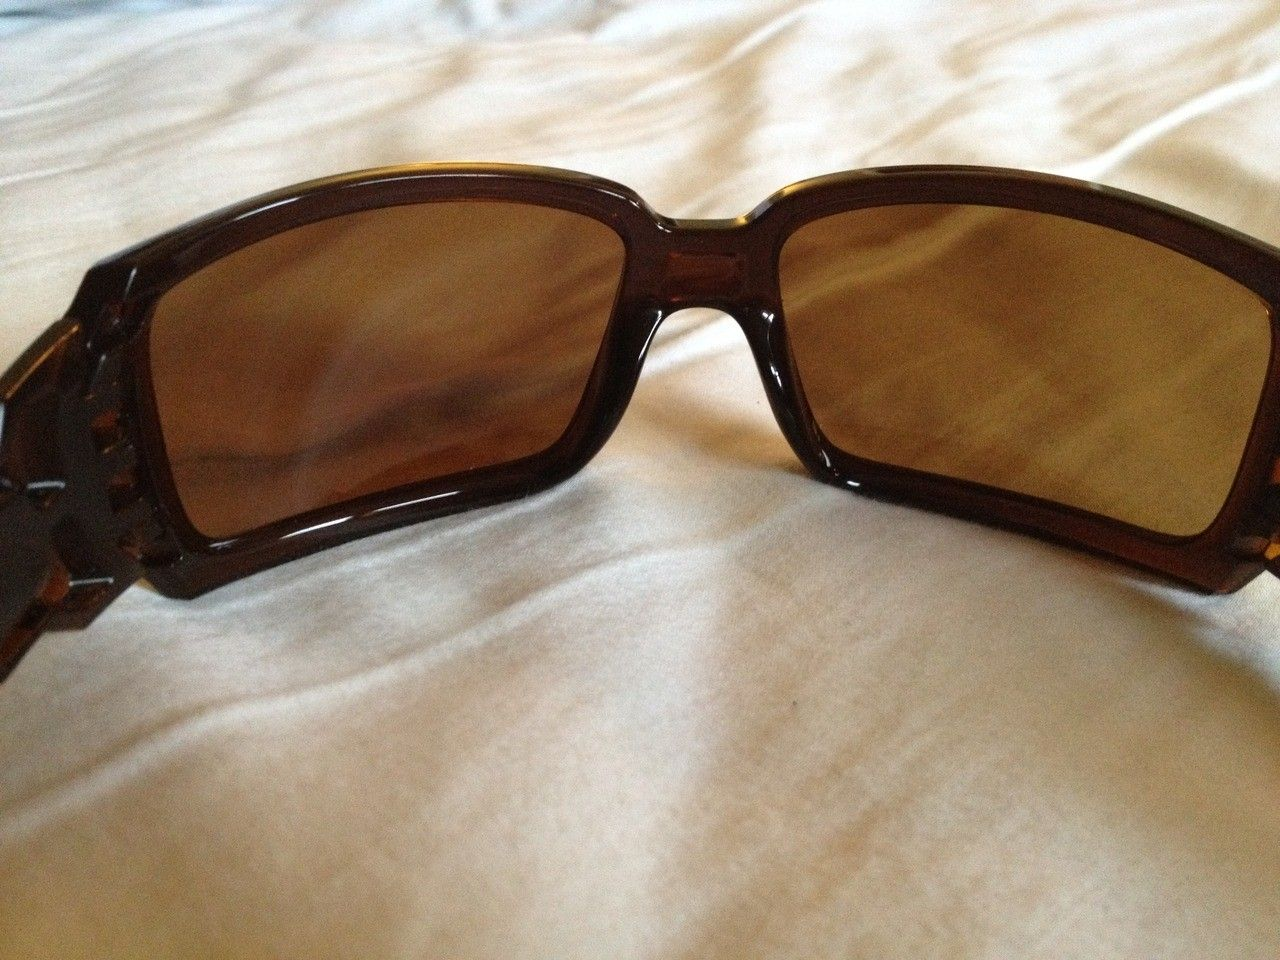 WTS/WTT: Oakley Bronze Oil Drum NEED TO SELL! - tumblr_mch1pwFXWR1rbptugo3_1280.jpg